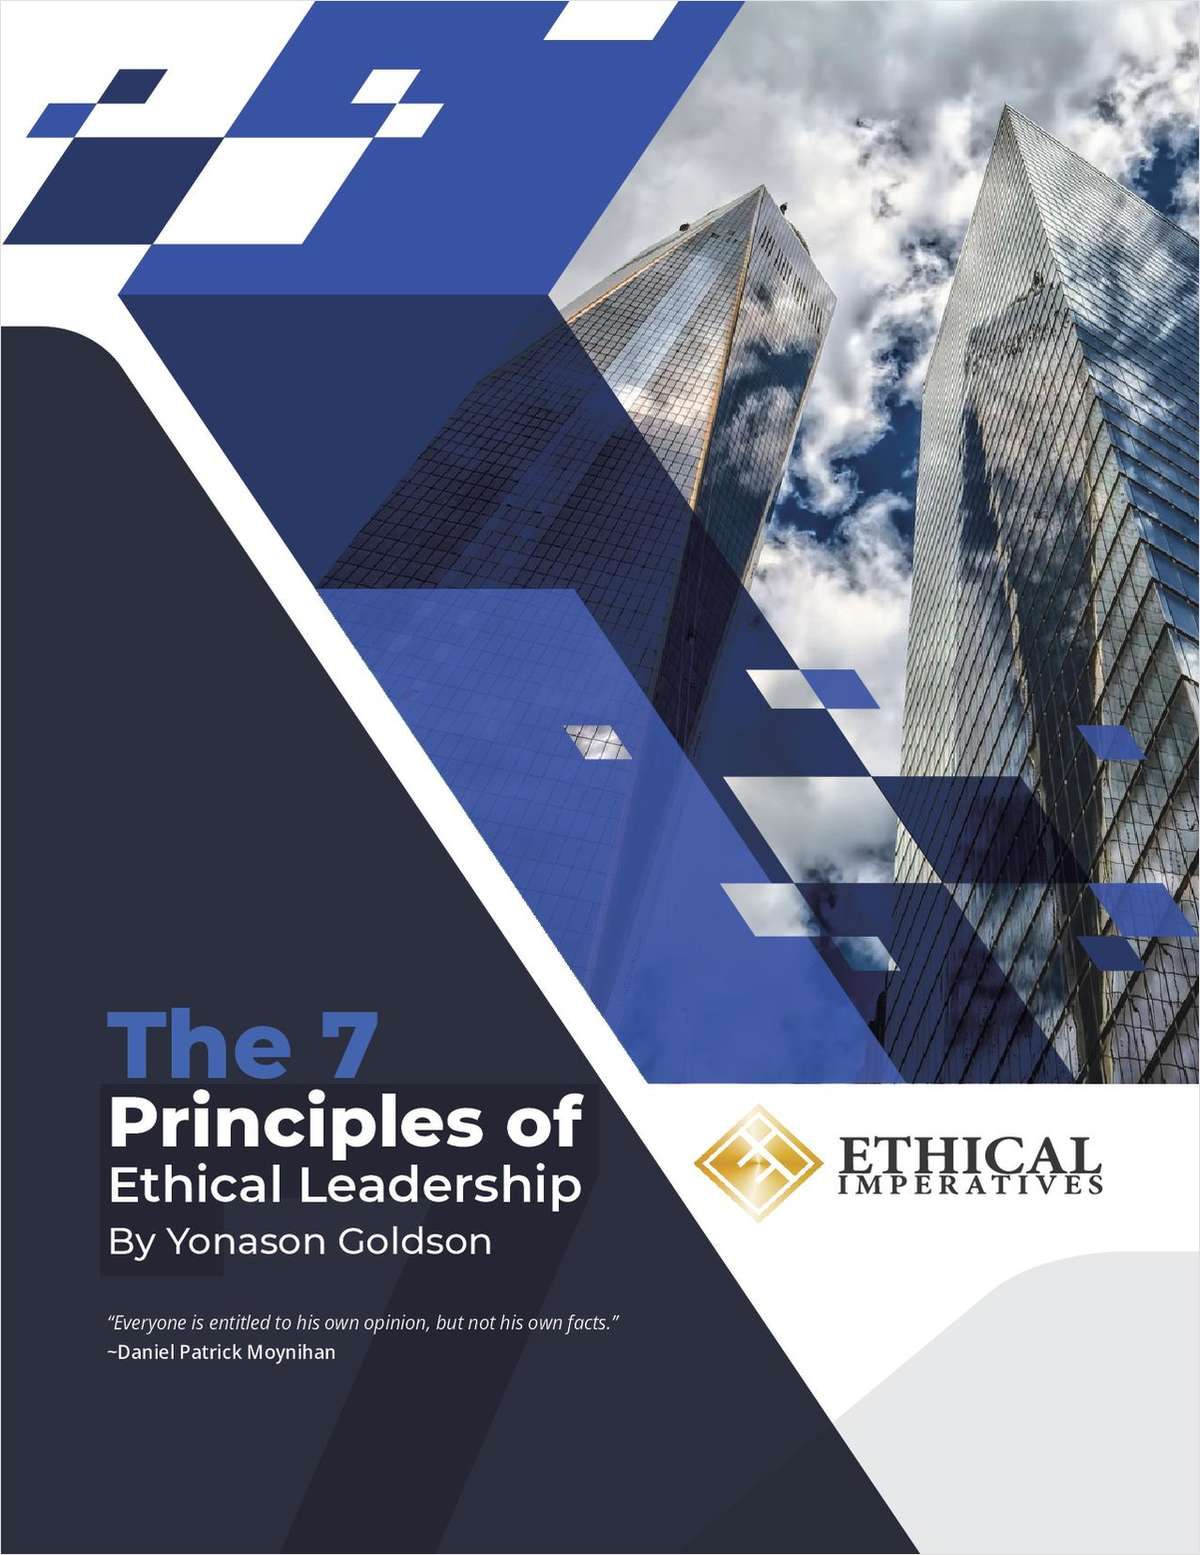 The 7 Principles of Ethical Leadership